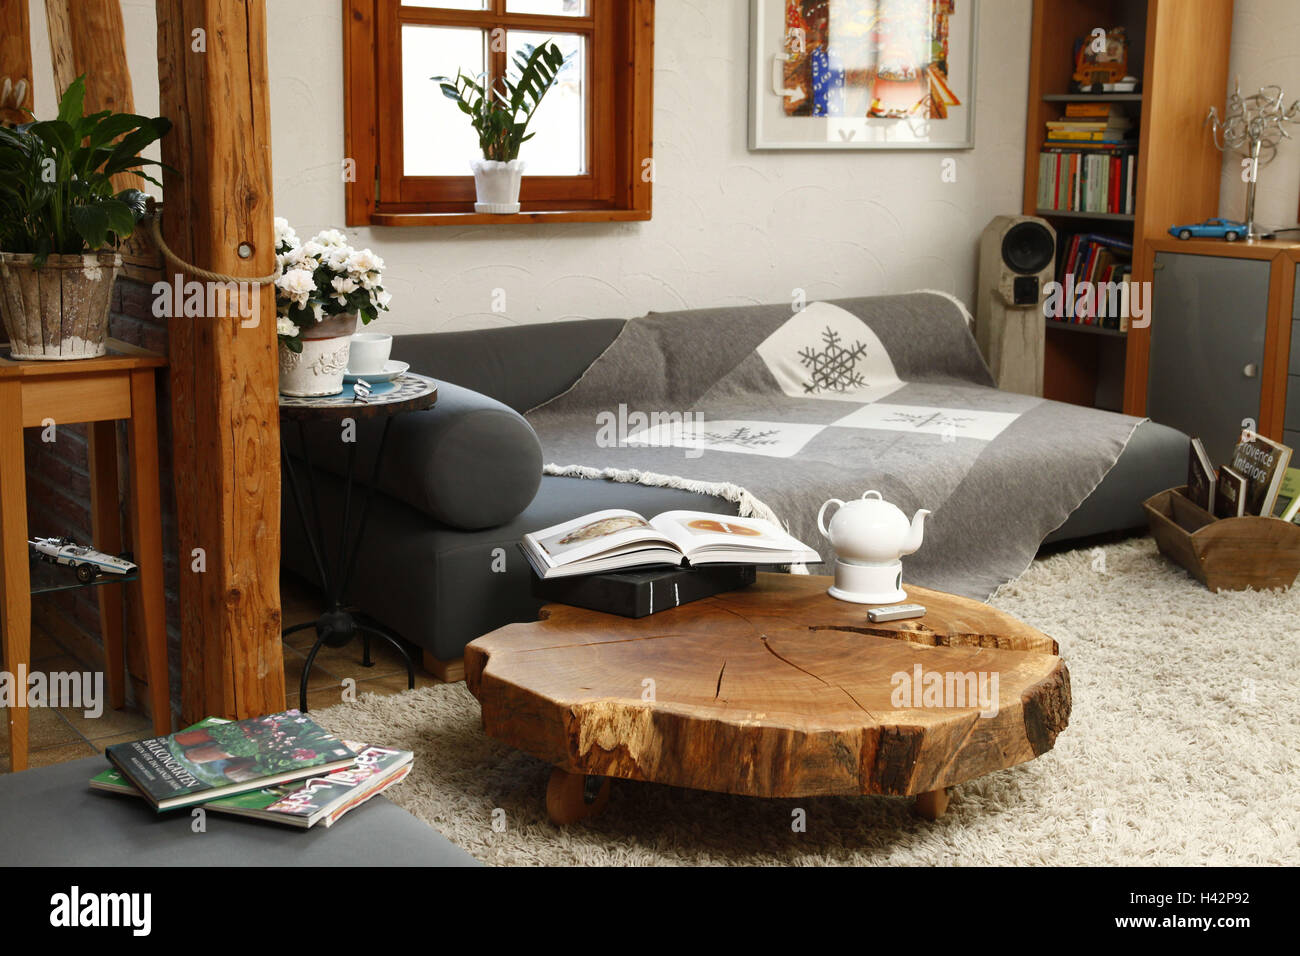 Sitting room, wooden table, - Stock Image